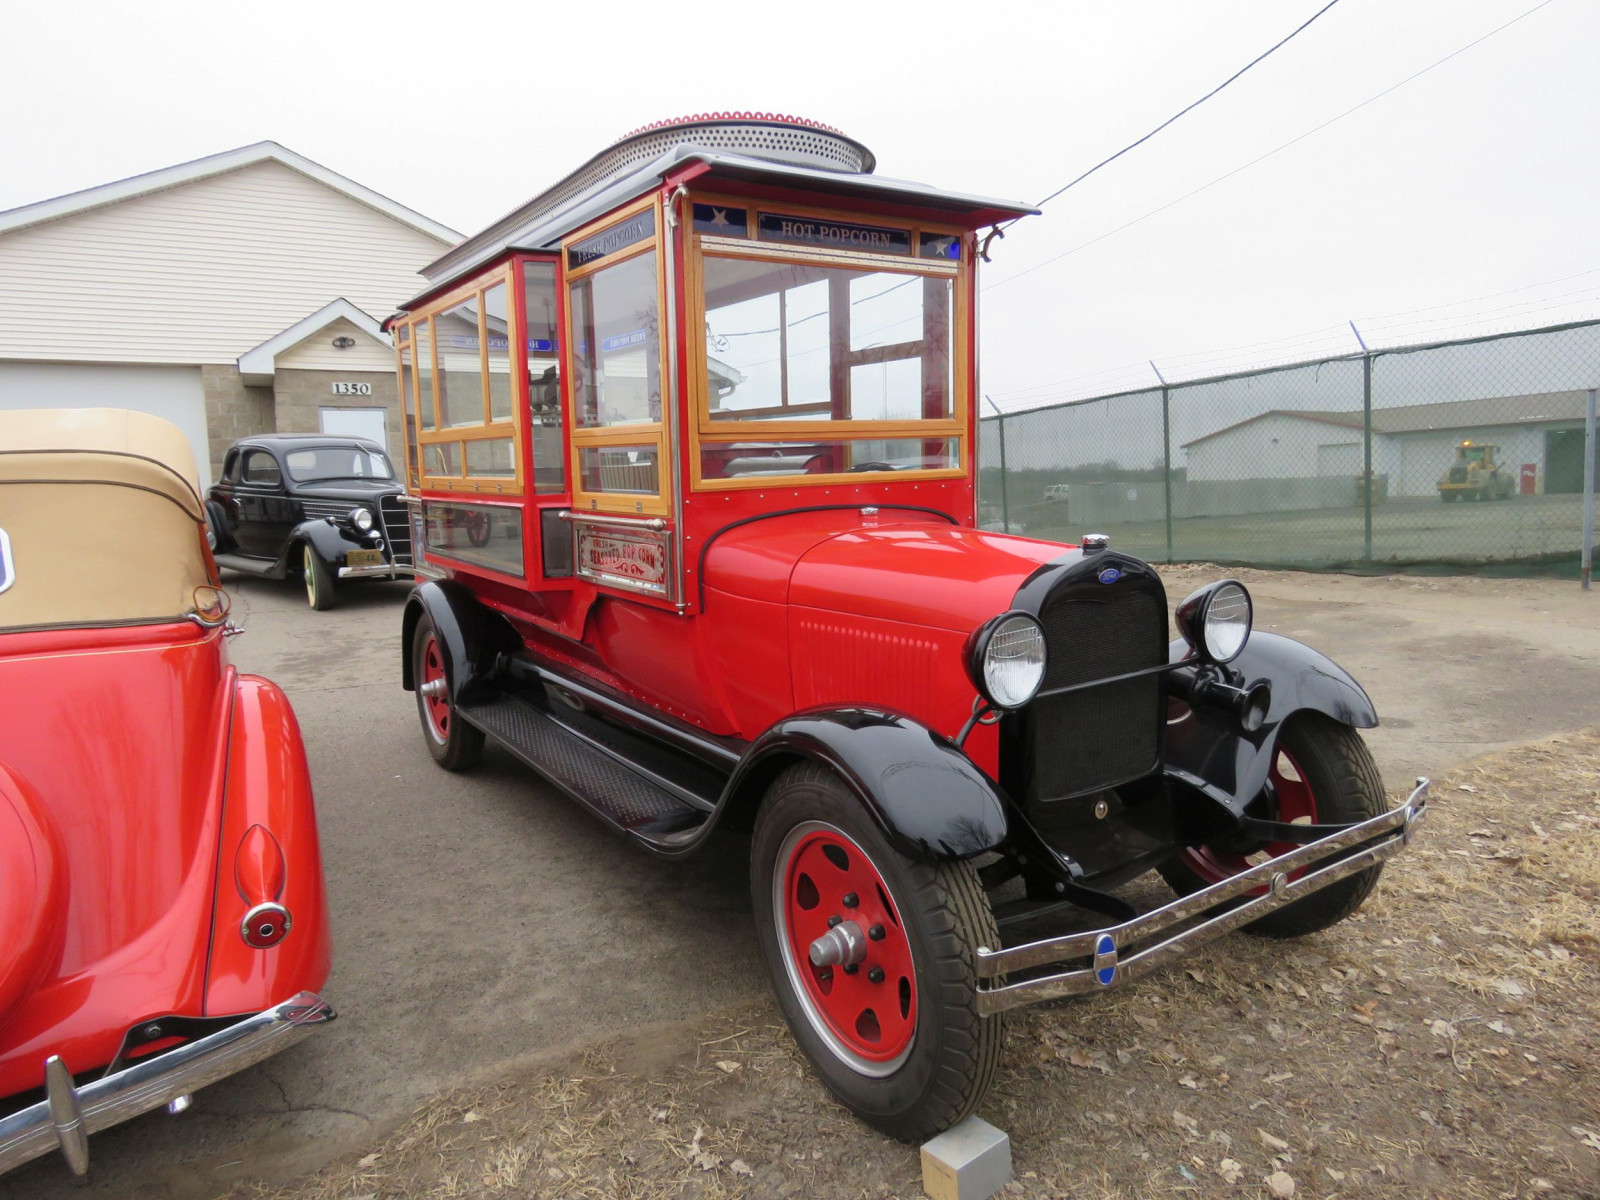 1928 Ford Model AA Popcorn Truck - Image 4